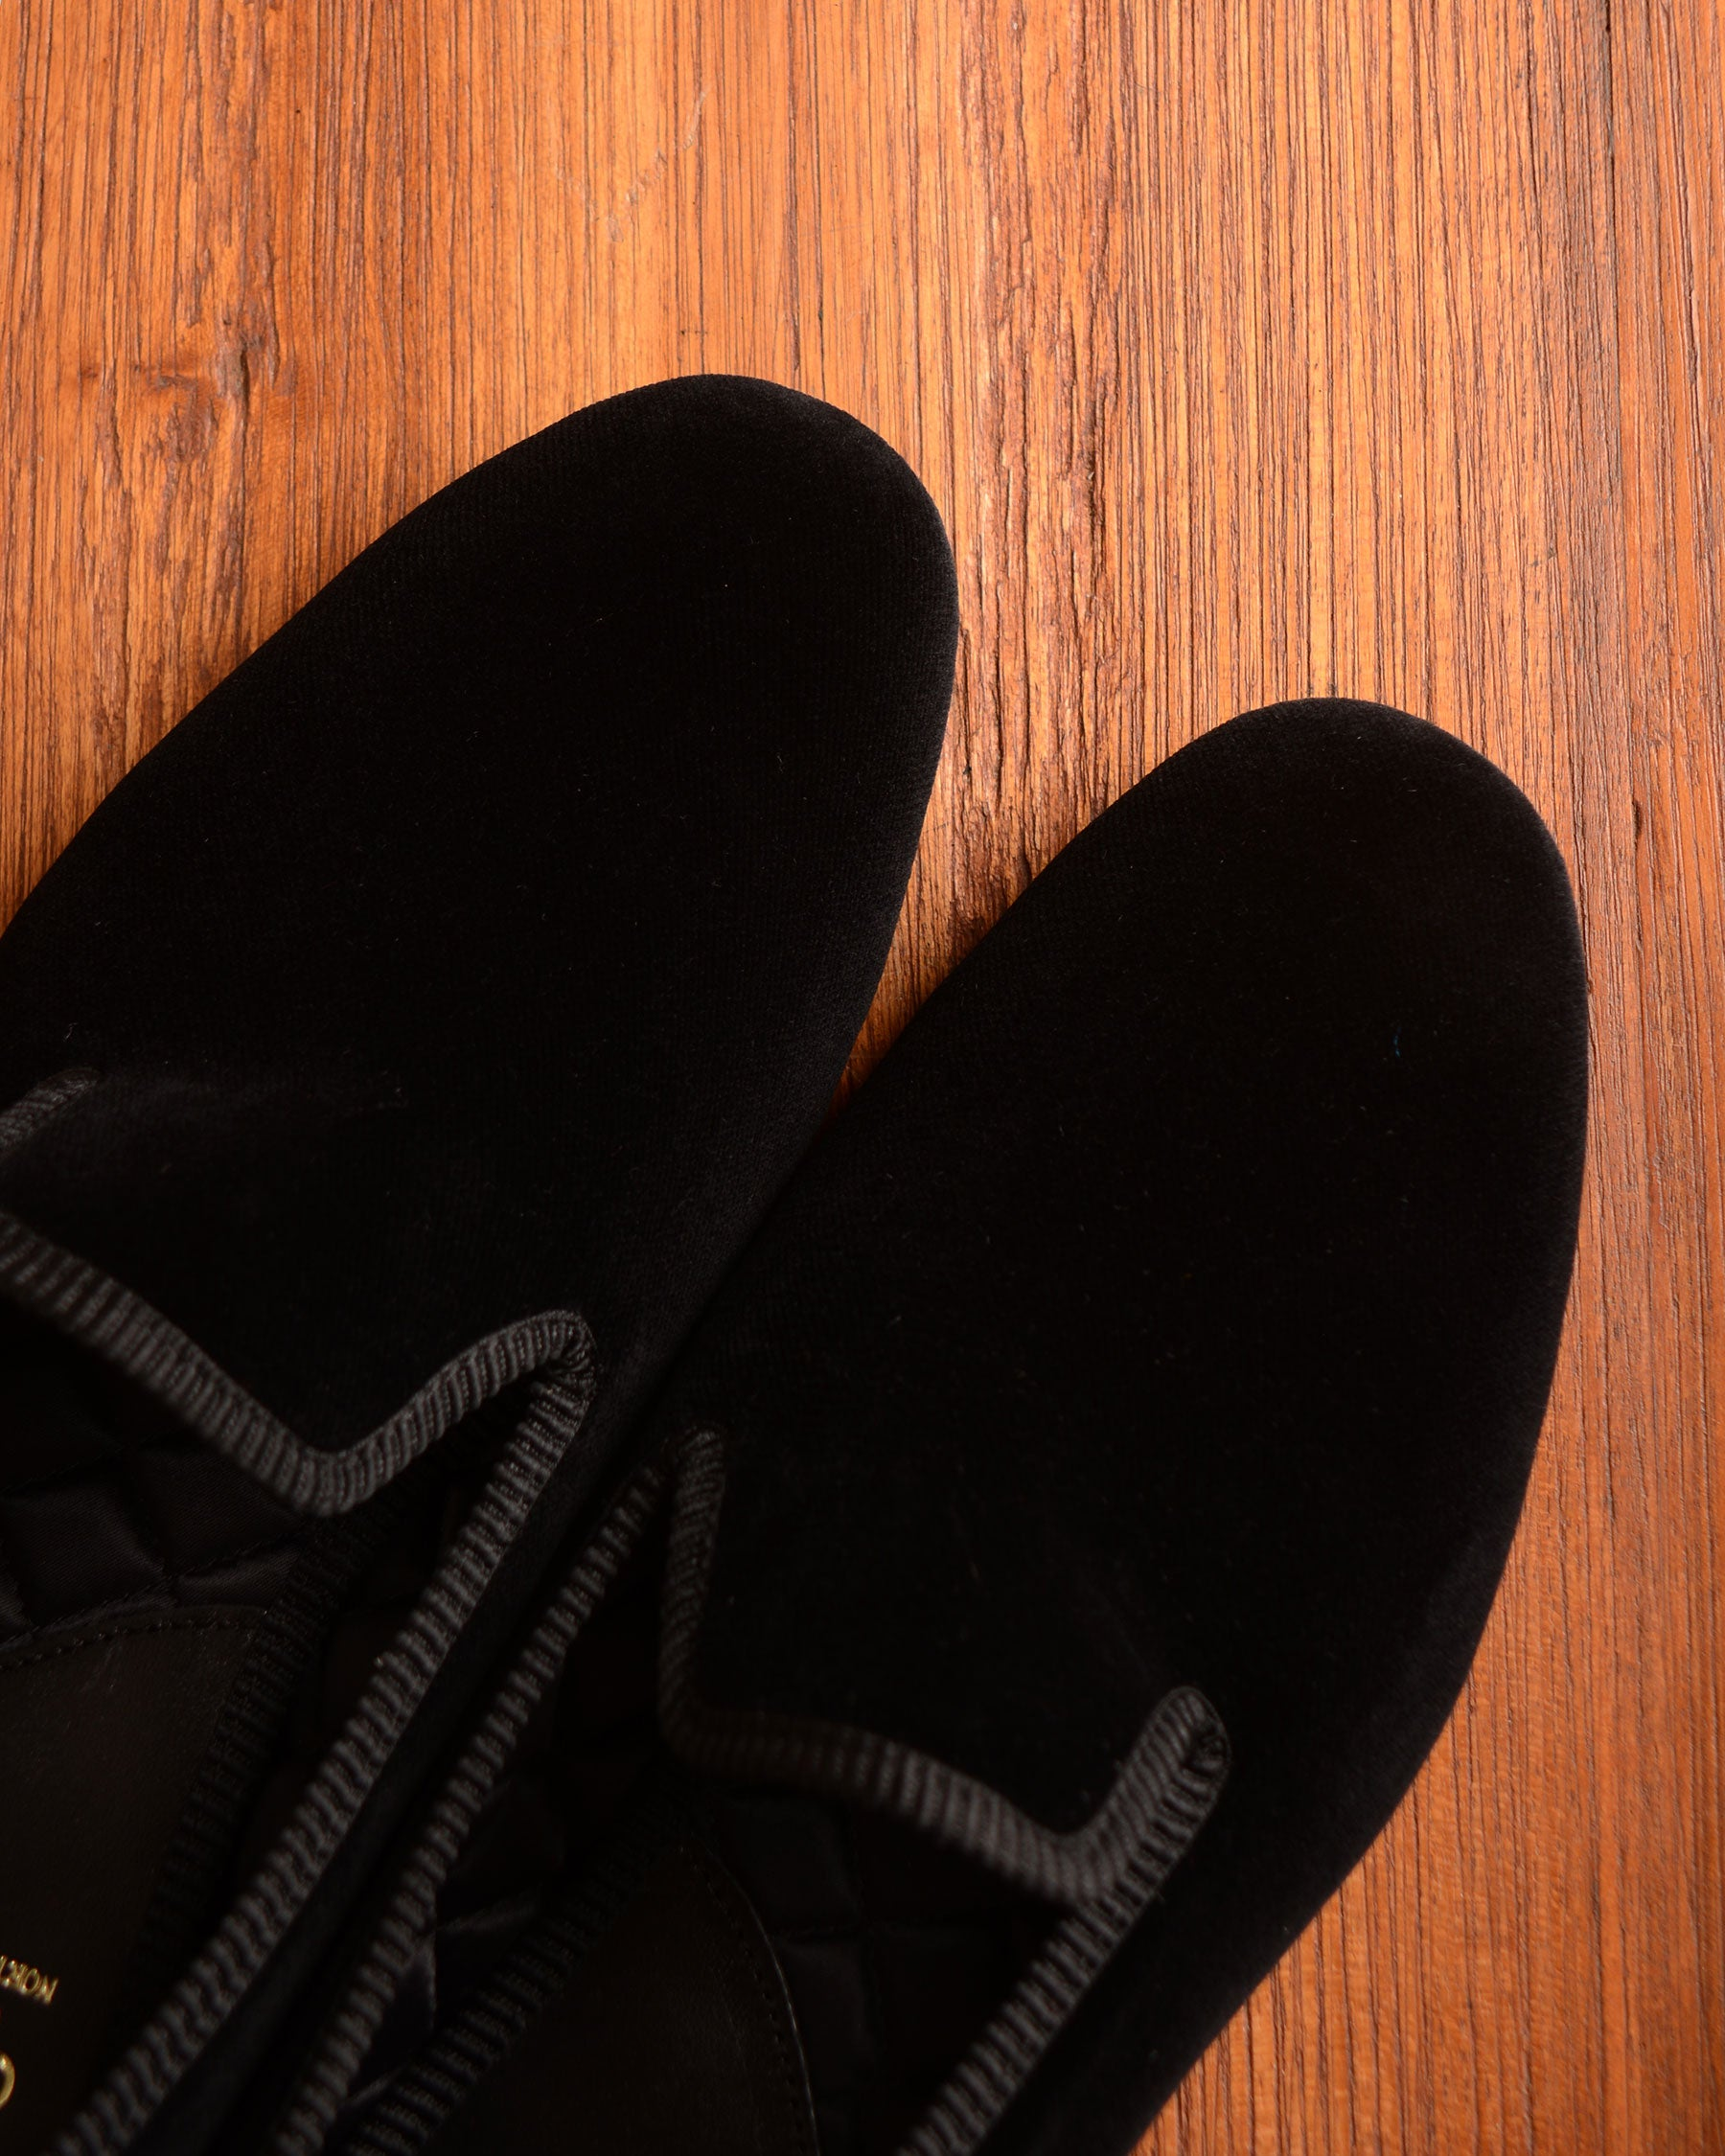 Crockett & Jones Slipper - Black